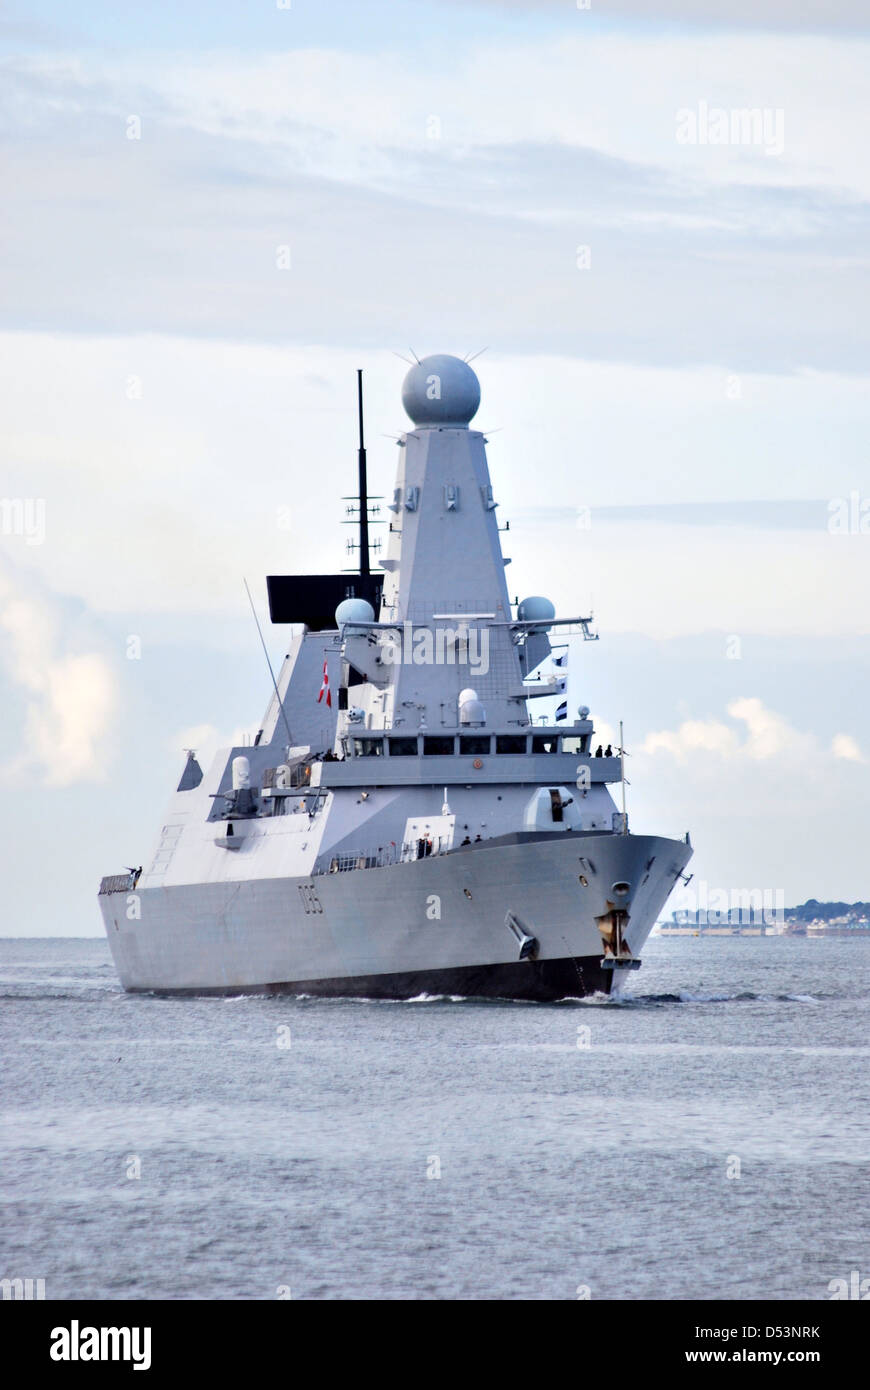 The Royal Navy Destroyer HMS Dragon arrives at Portsmouth following an exercise in the Solent. - Stock Image